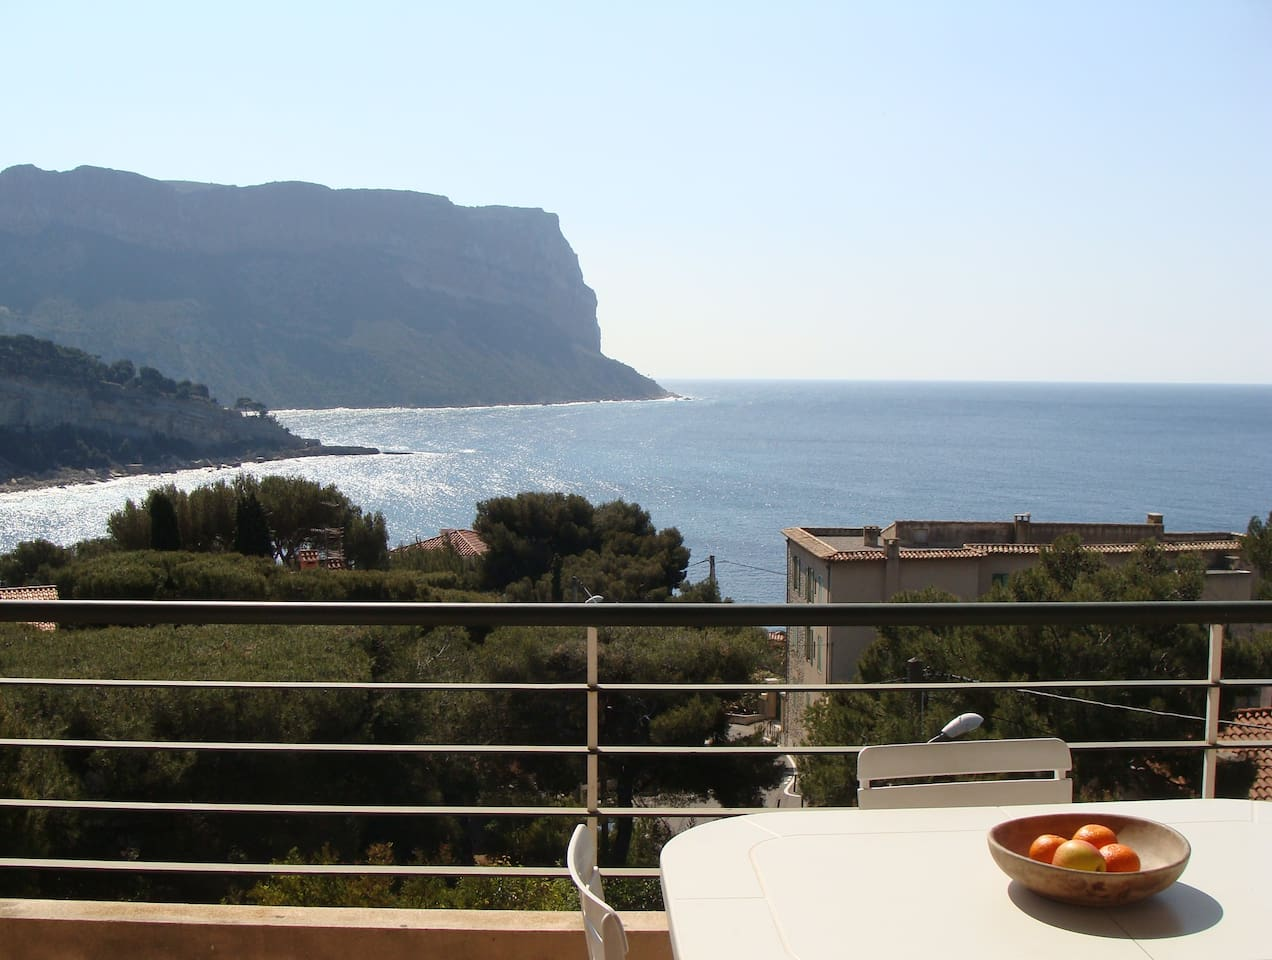 Enjoy the view and fresh croissants on the terrace.